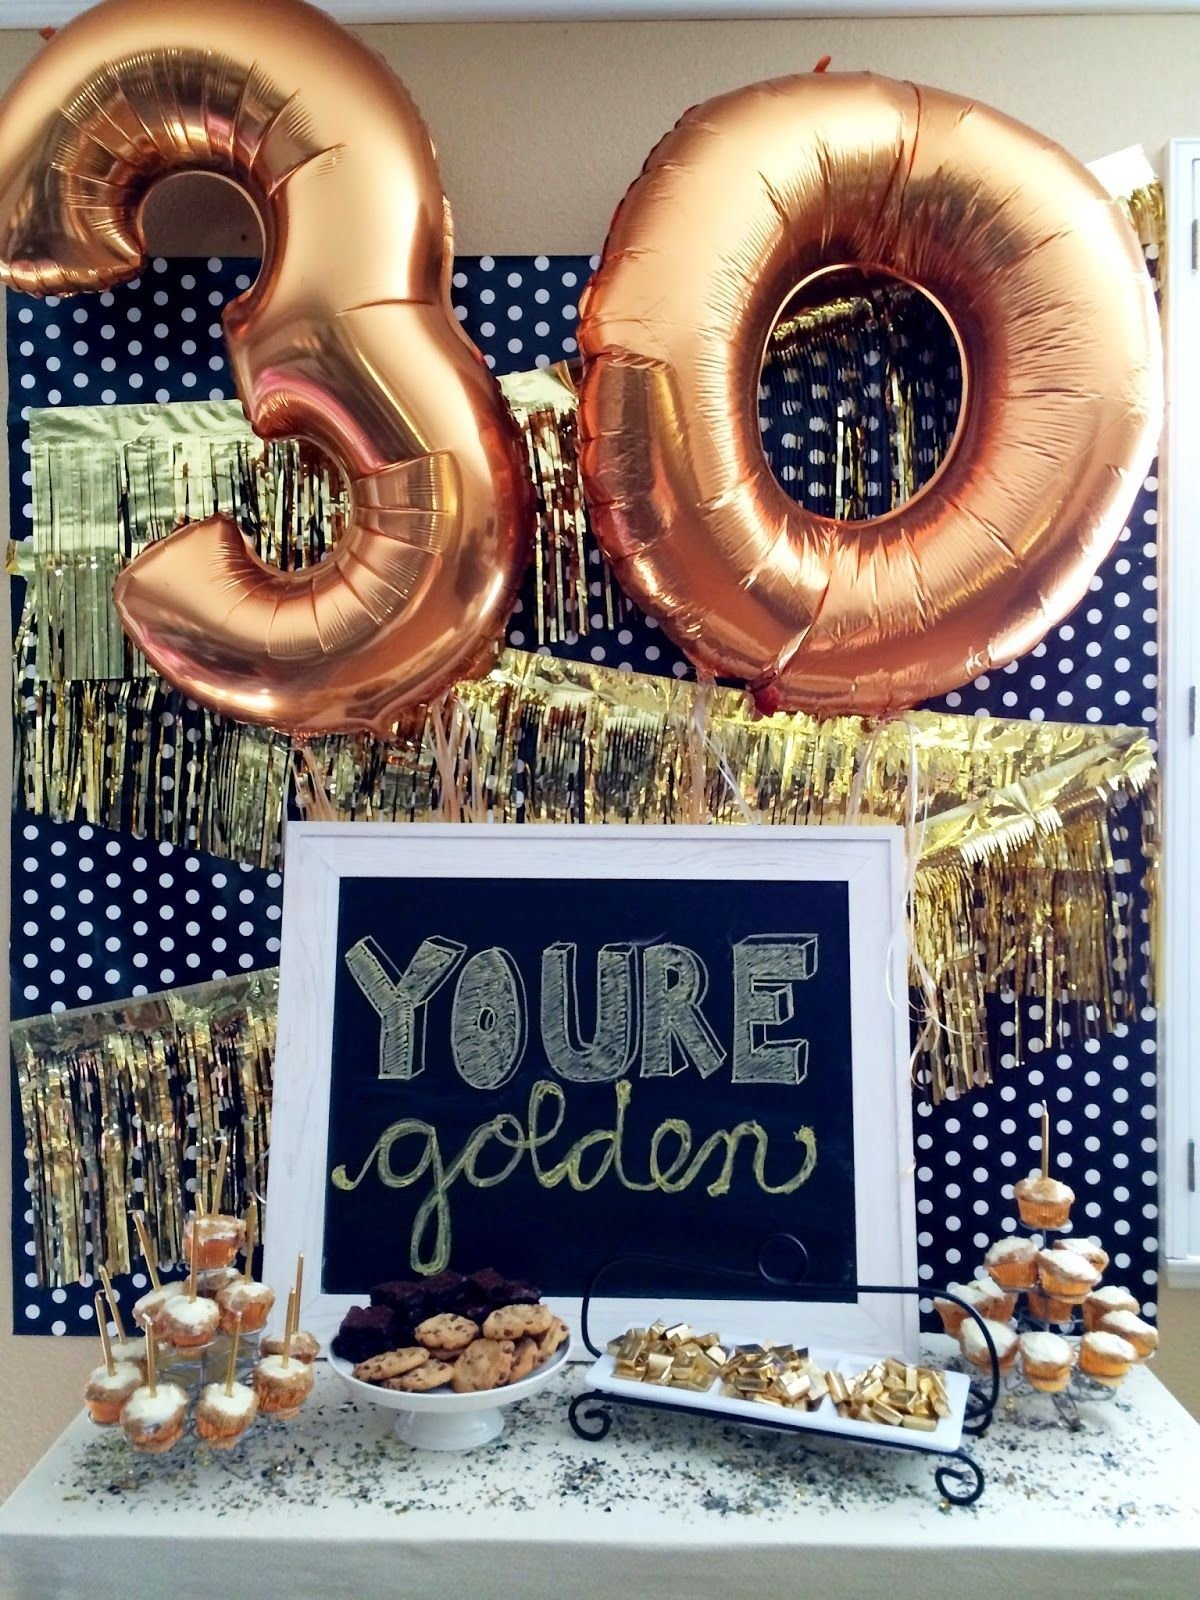 7 clever themes for a smashing 30th birthday party | 30 birthday